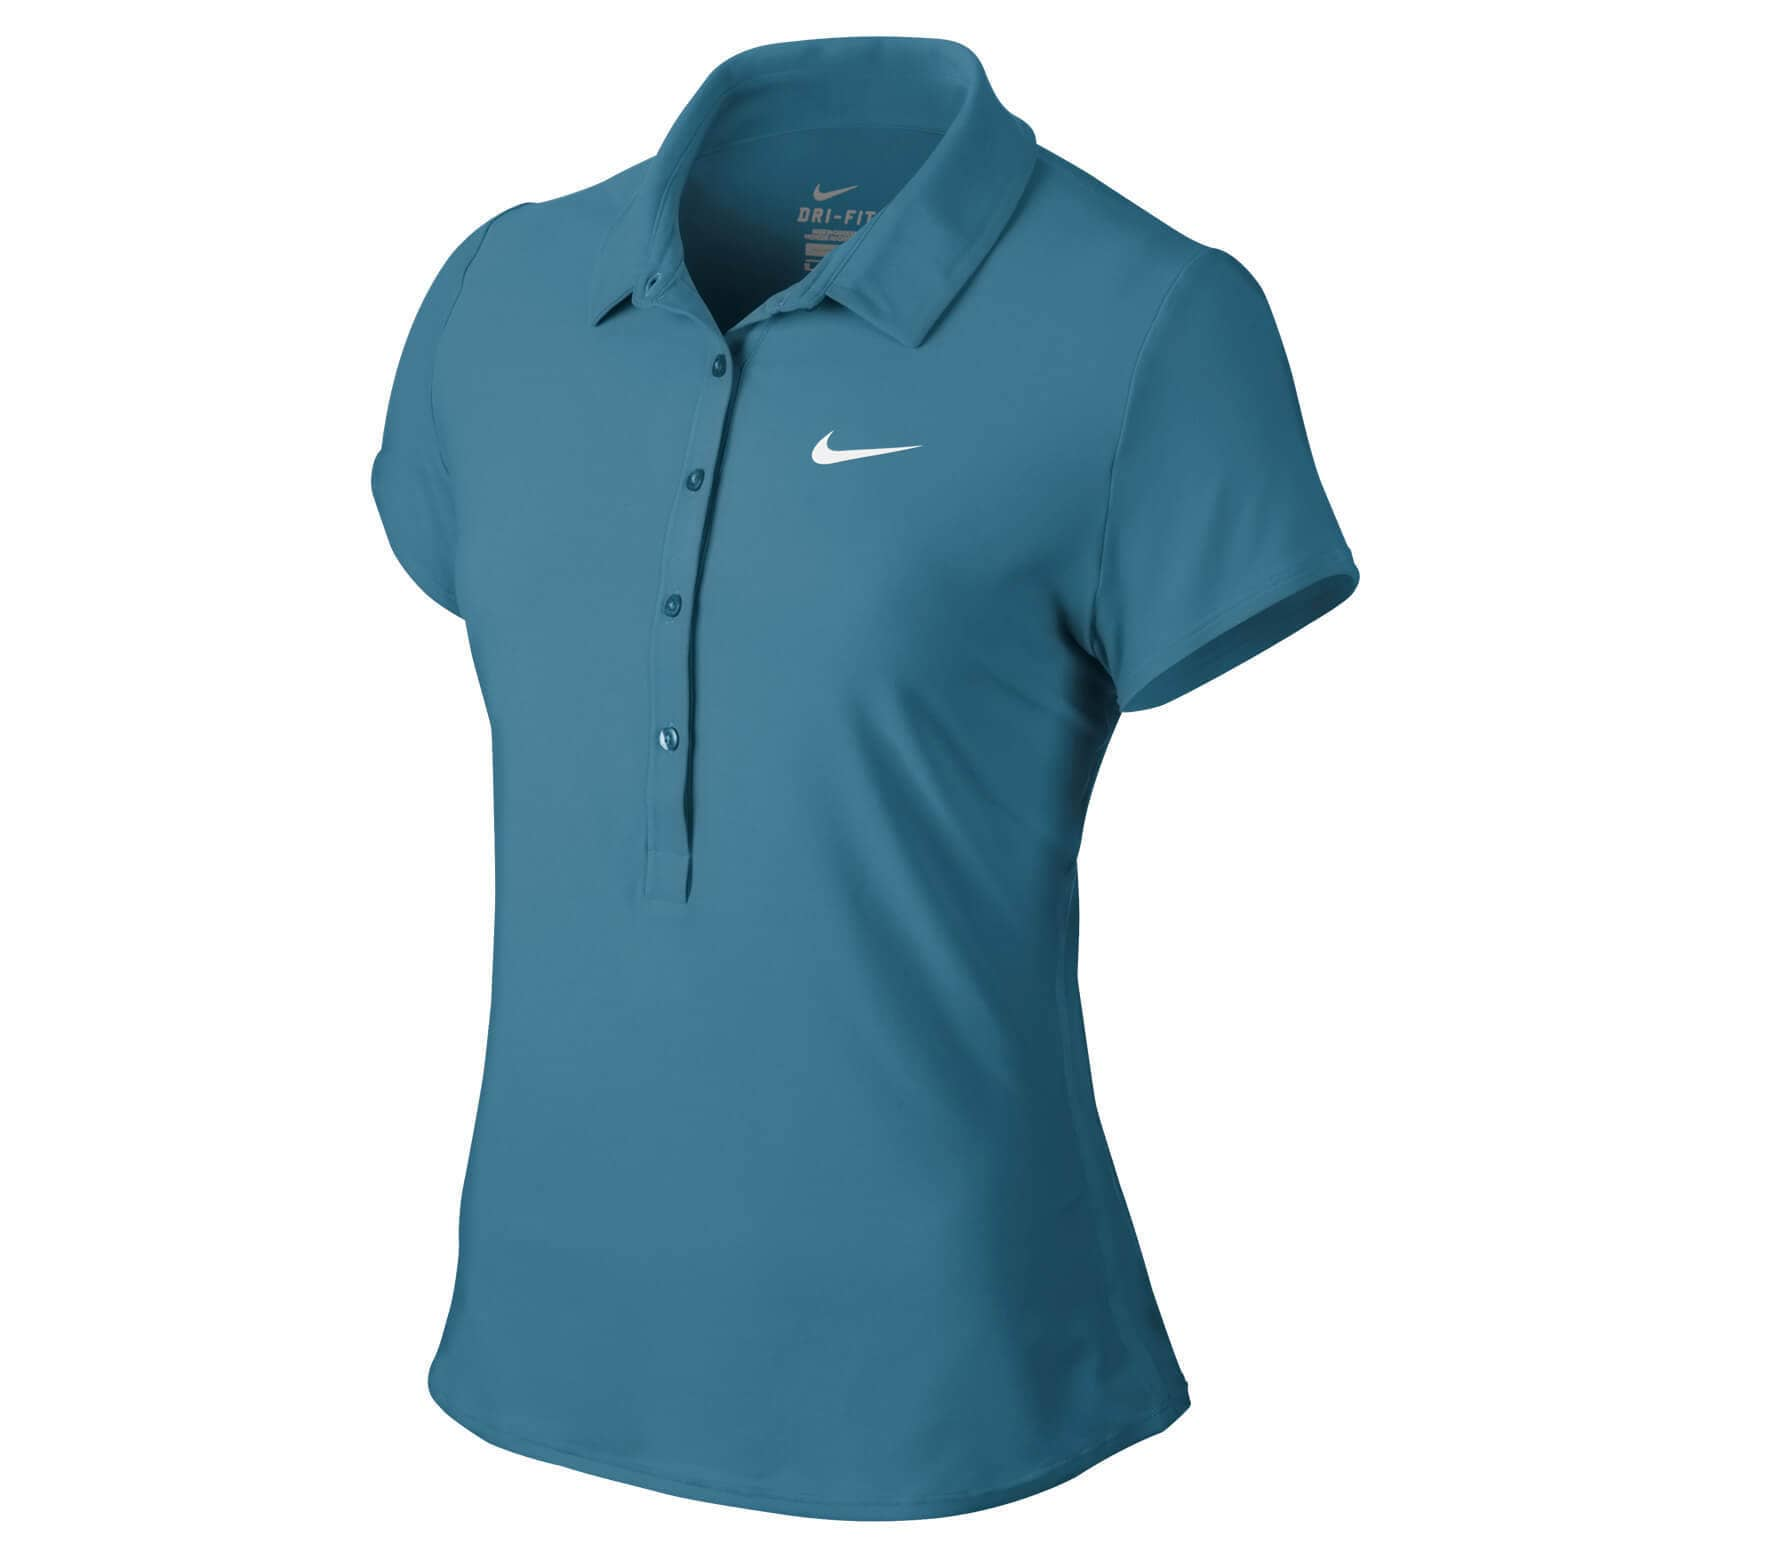 Nike - Advantage Polo women s tennis polo top (blue) - buy it at the ... ca4e1f84012e